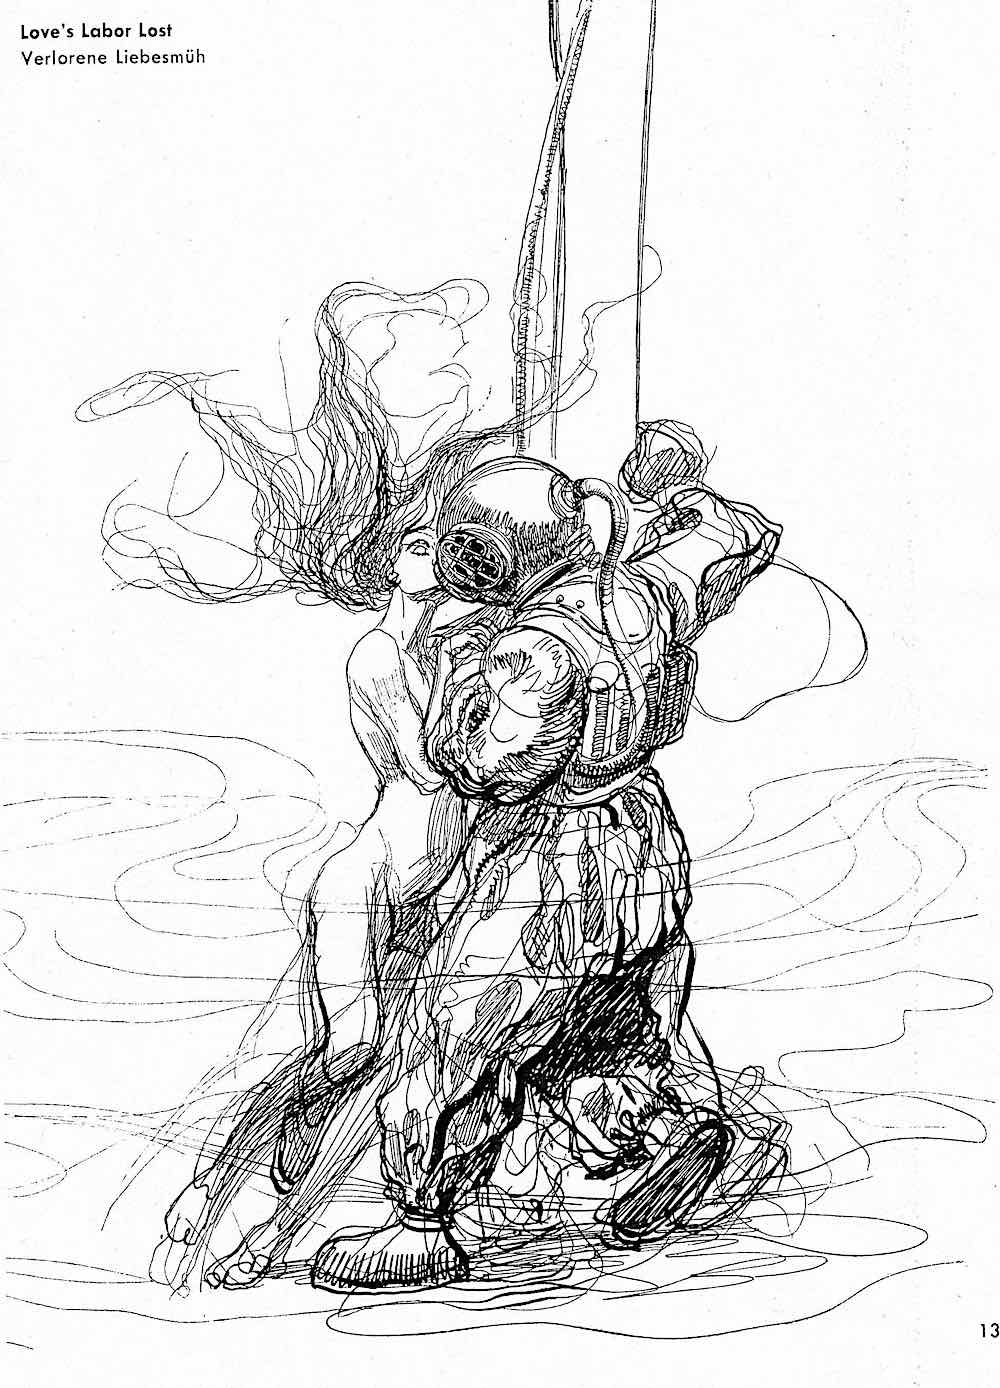 Heinrich Kley, Love's Labor Lost, a deep diver and a mermaid